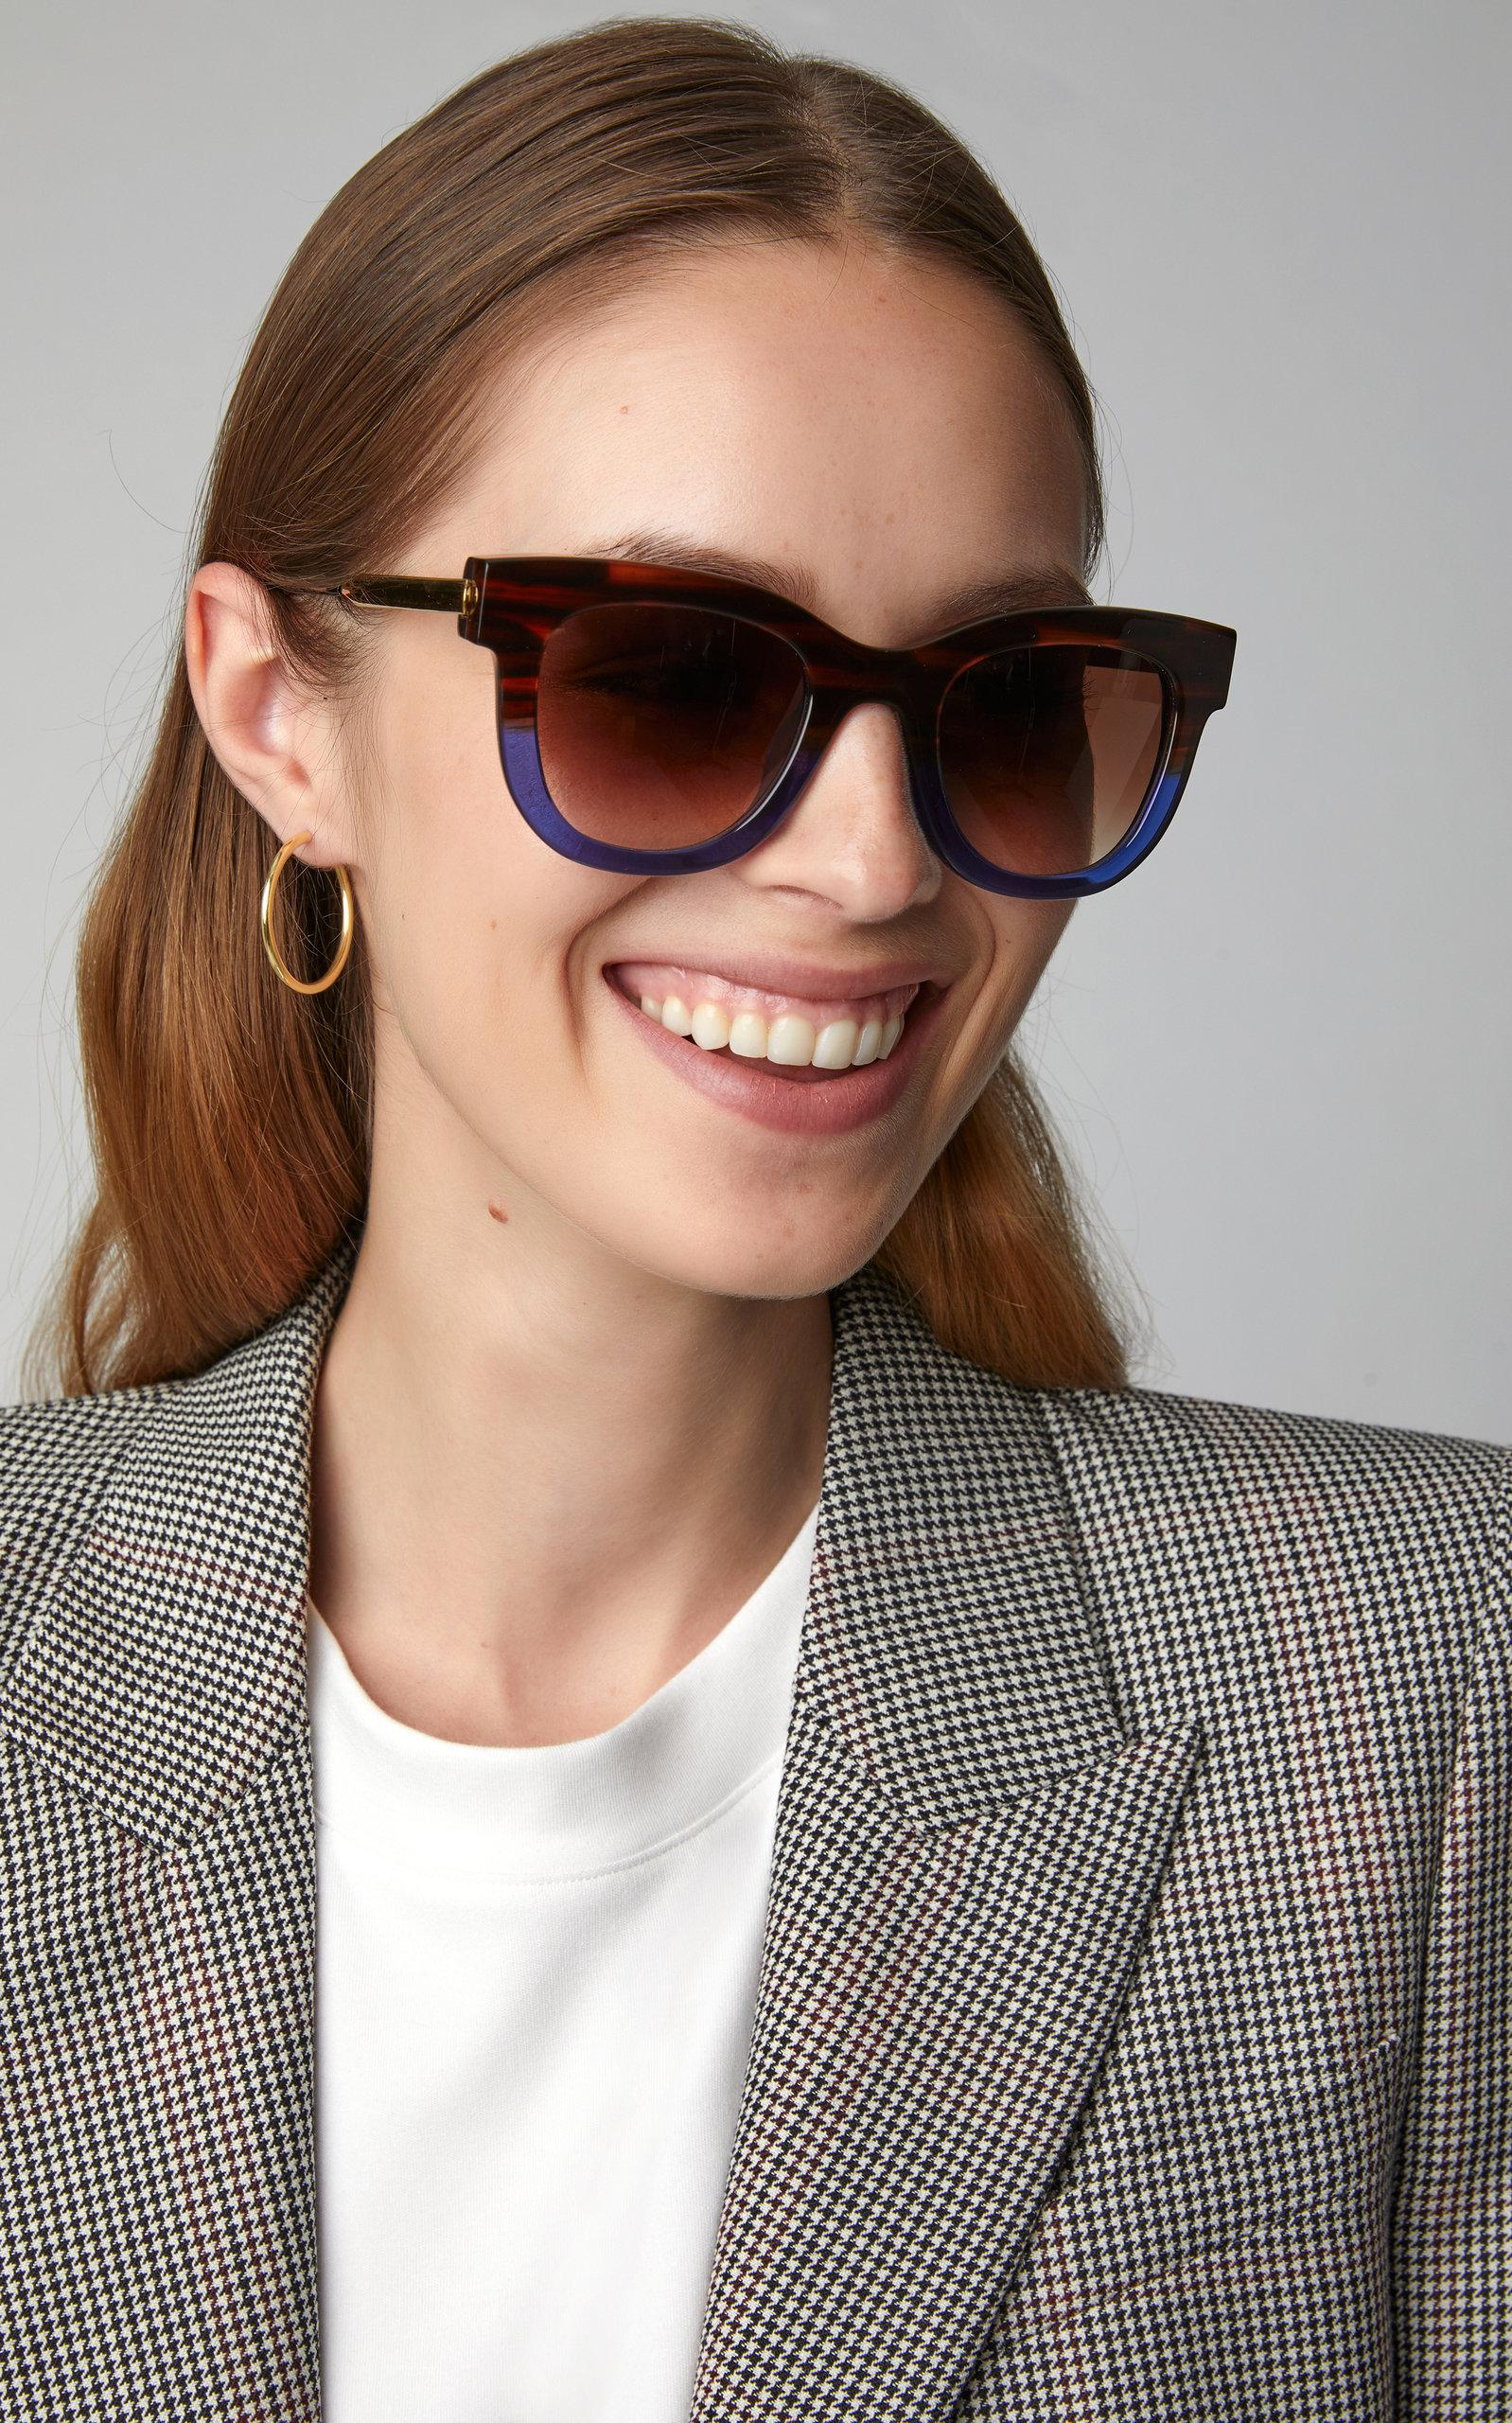 850341a9d0 Thierry Lasry - Blue Sexxxy 197 Two-tone Cat-eye Sunglasses - Lyst. View  fullscreen